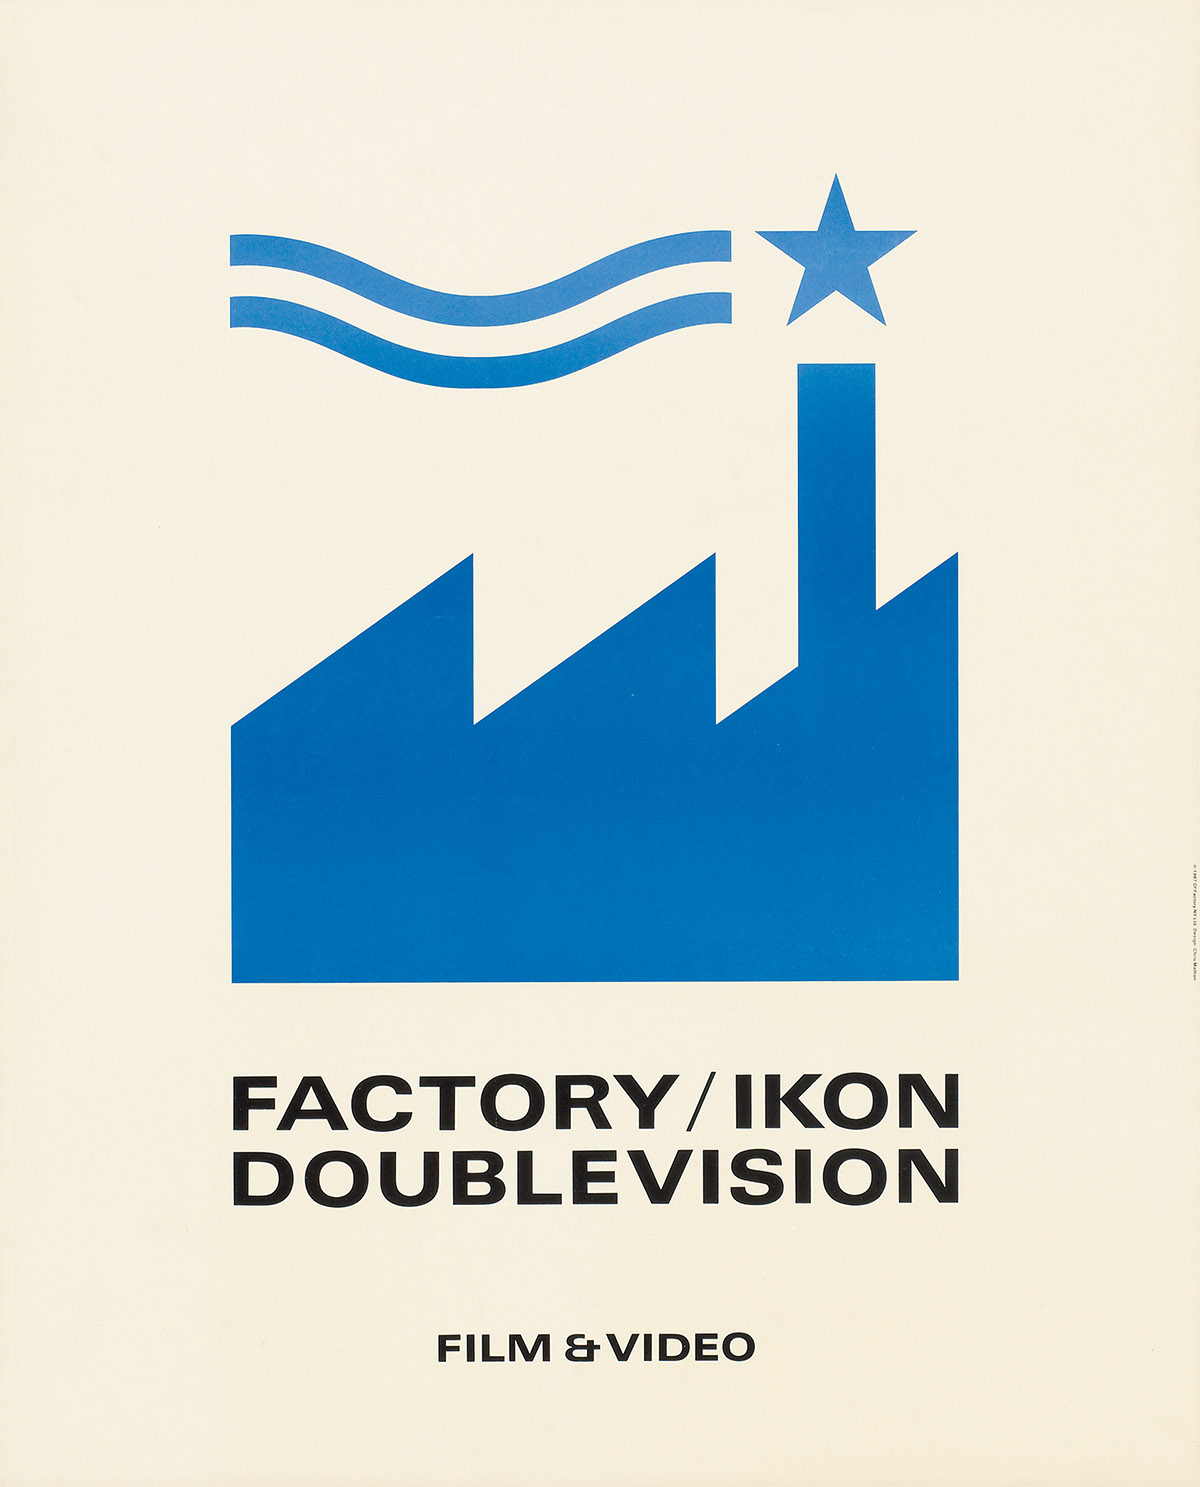 CHRIS MATHAN (DATES UNKNOWN). FACTORY / IKON / DOUBLEVISION. 1987. 23x19 inches, 59x48 cm. Of Factory NY Ltd., New York.